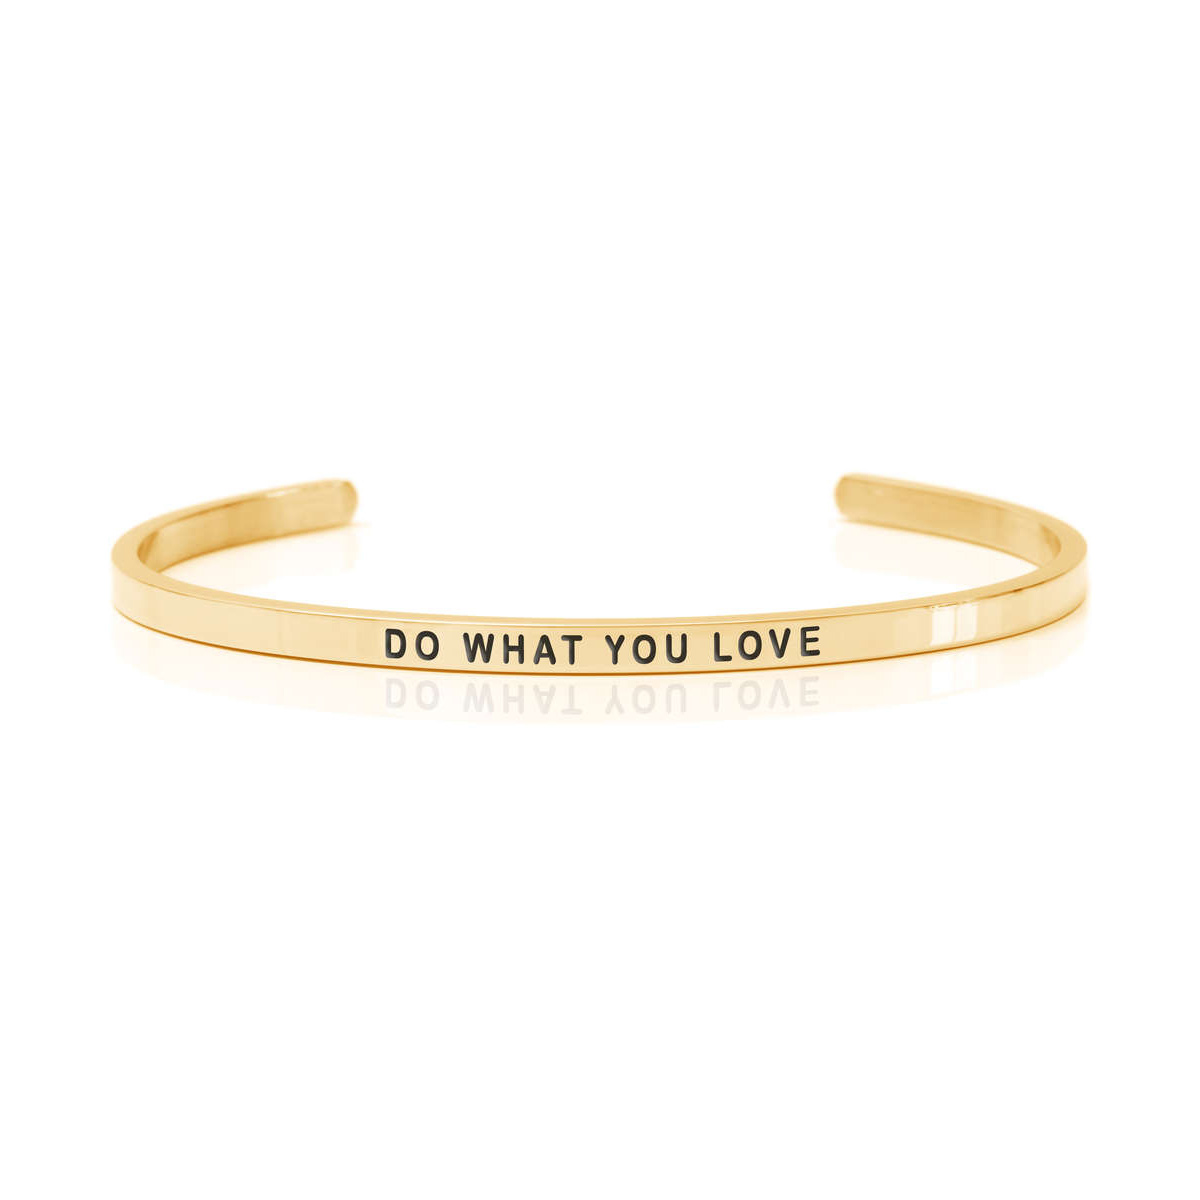 do-what-you-lovve-gold